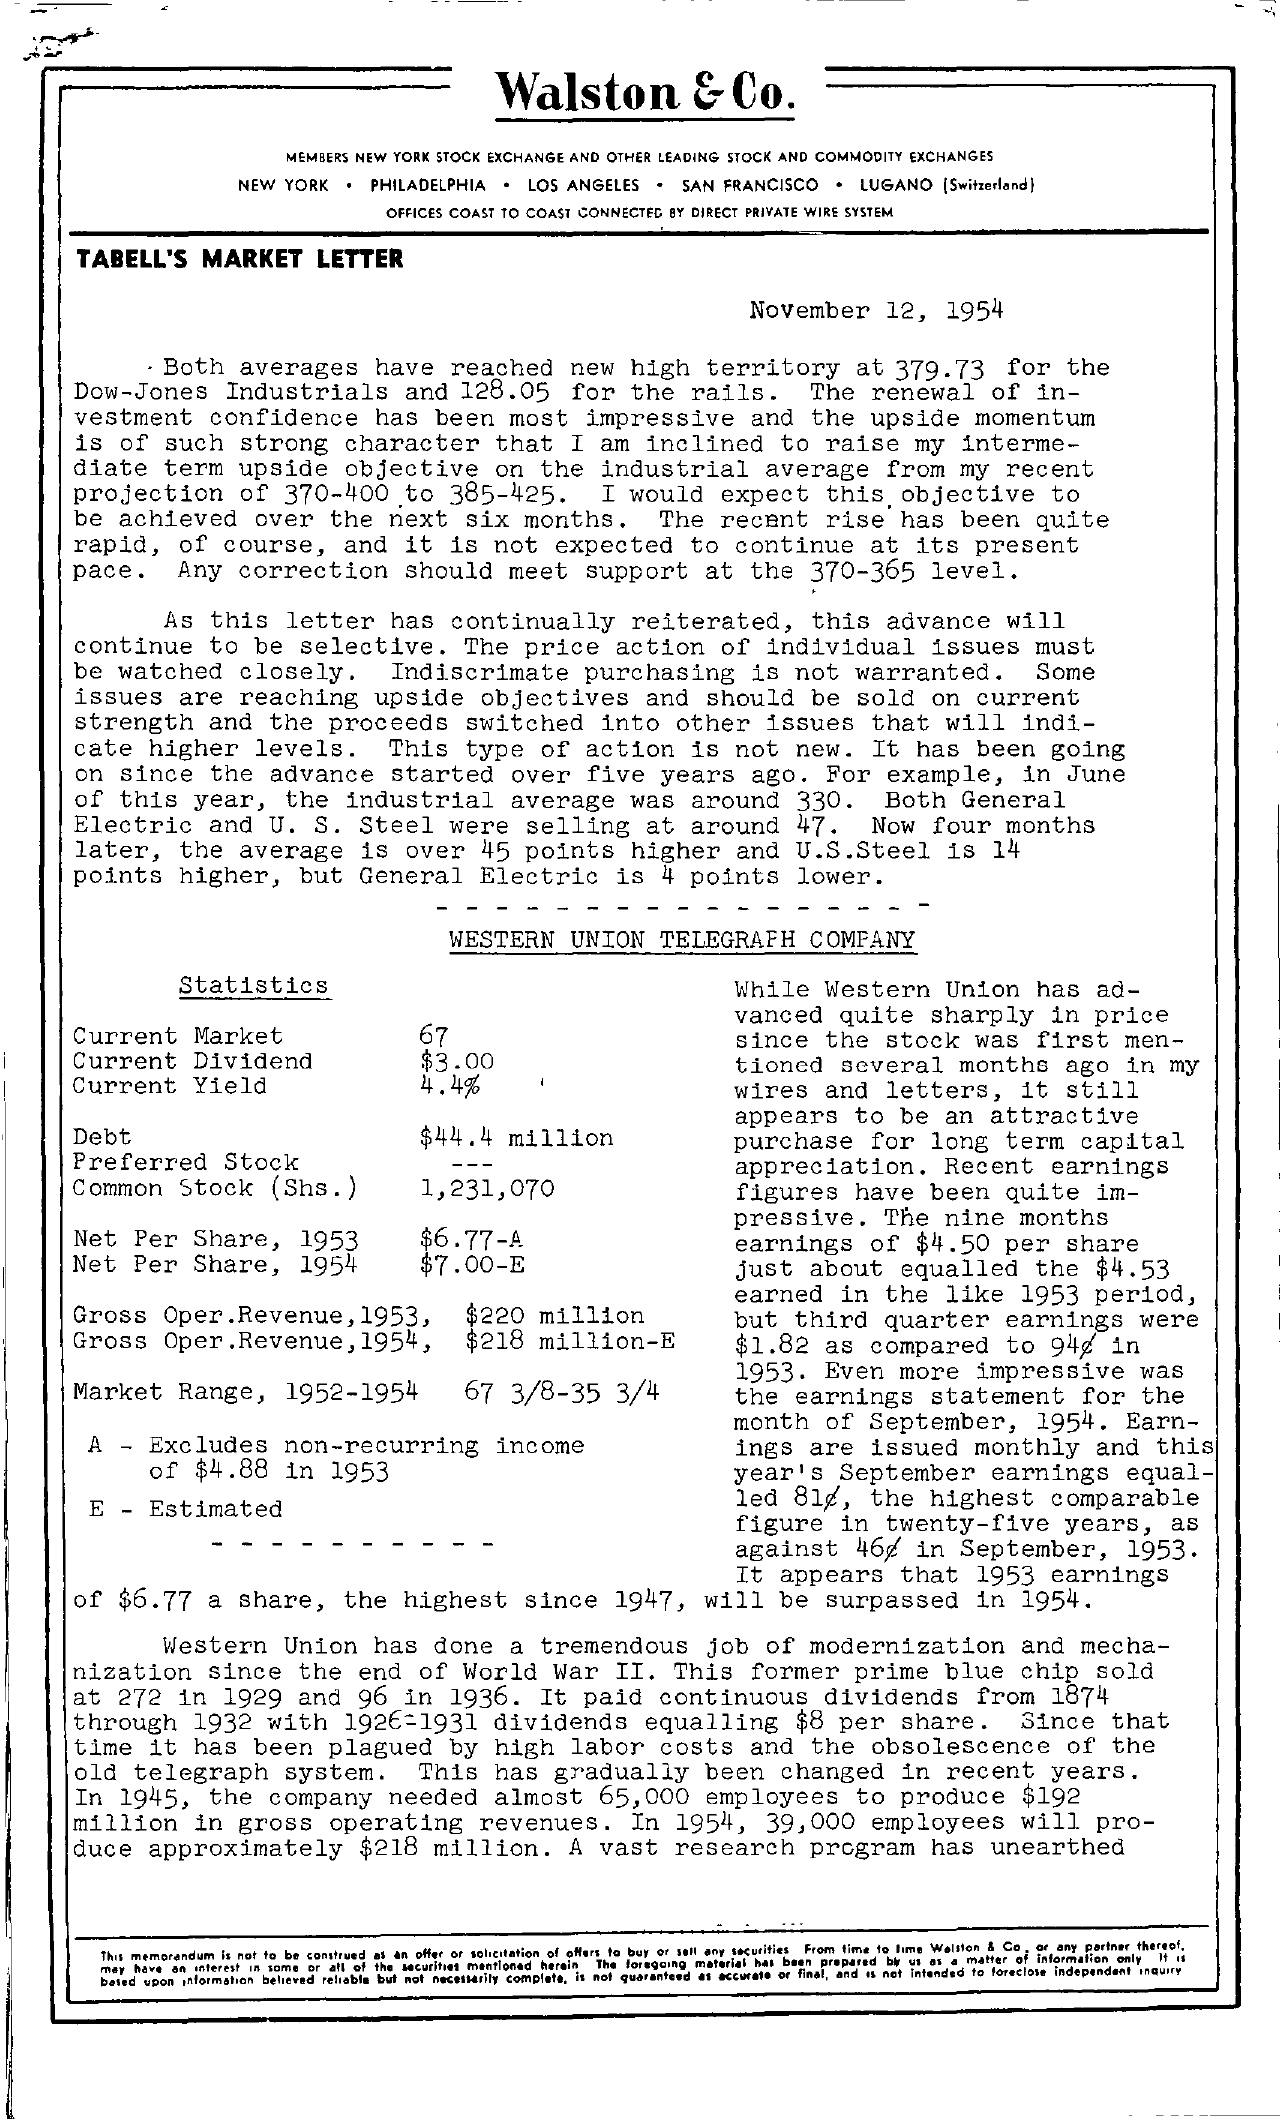 Tabell's Market Letter - November 12, 1954 page 1